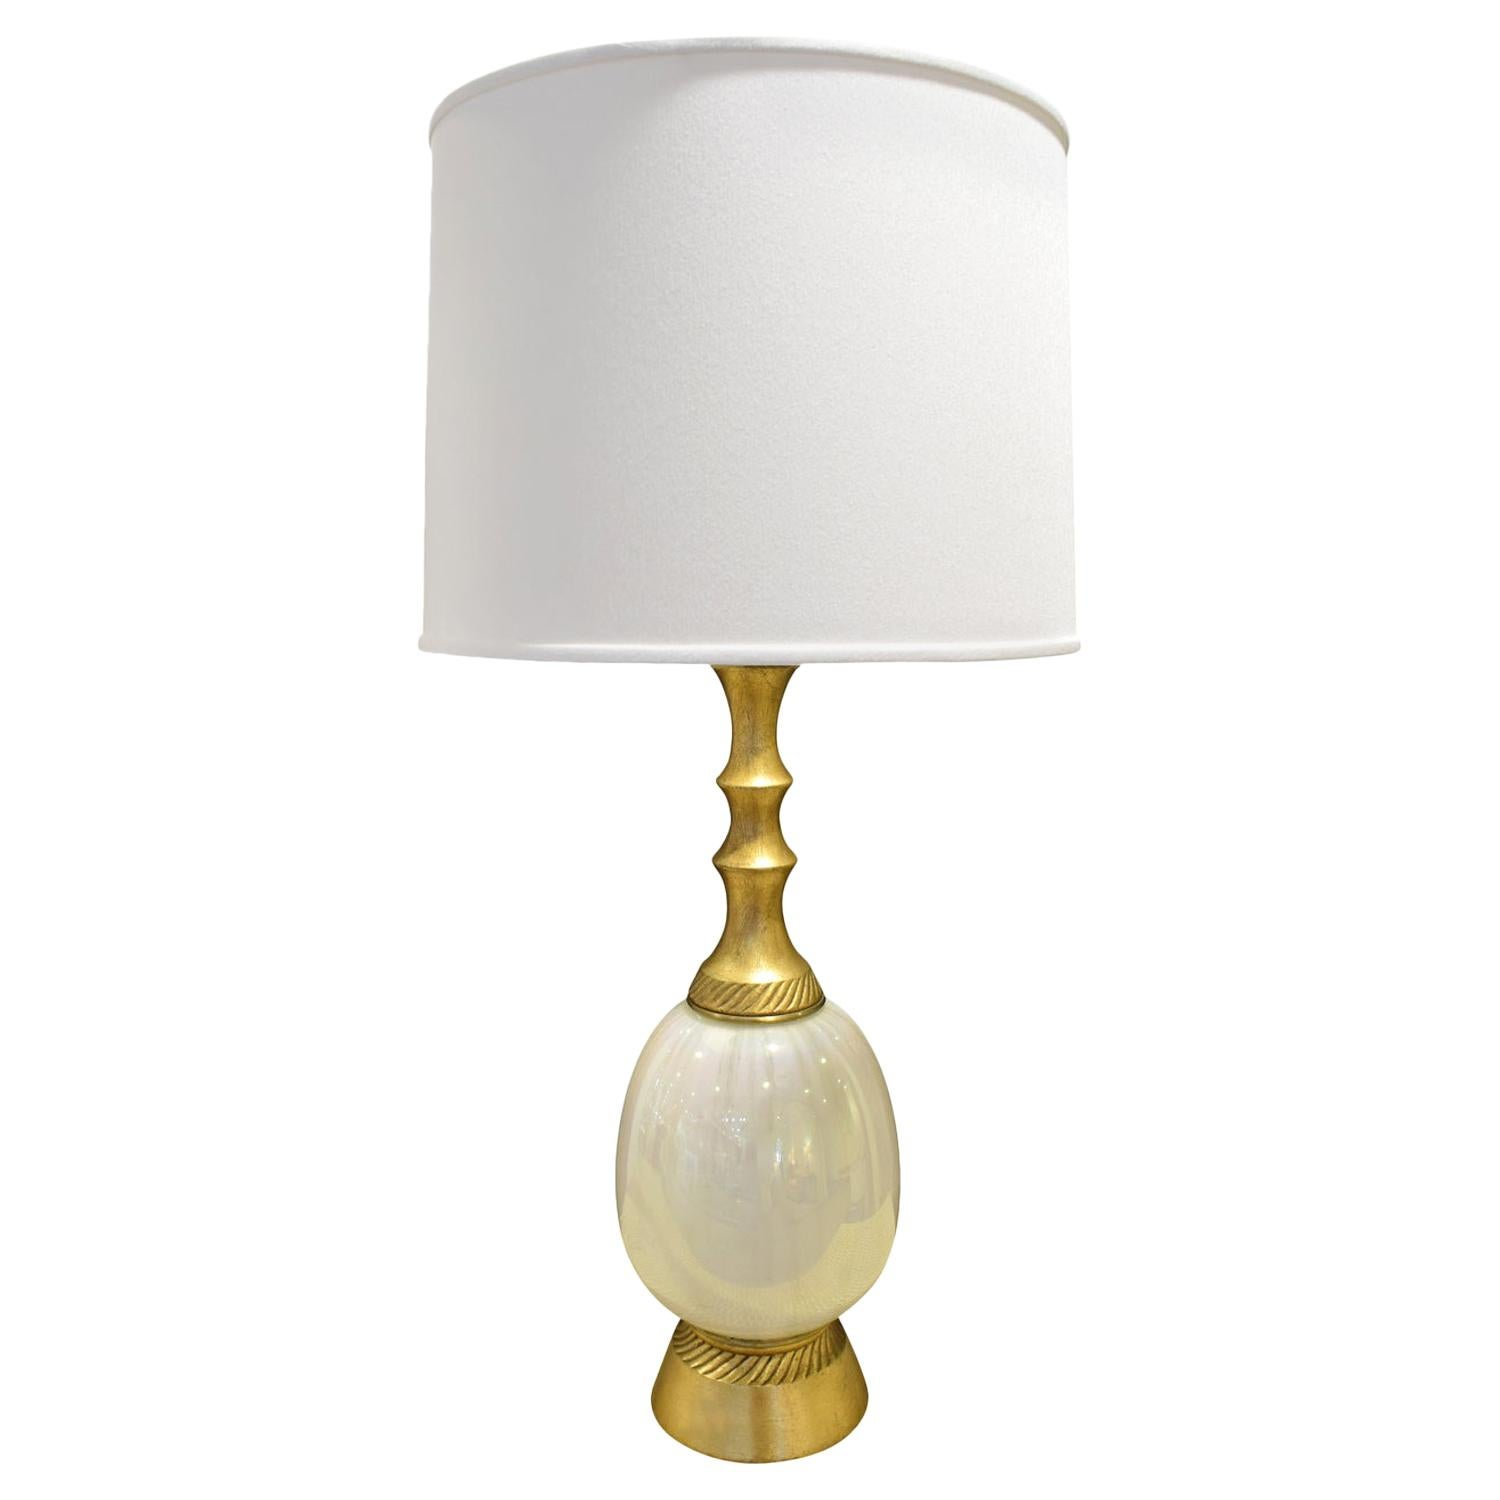 Elegant Table Lamp with Opaline Glass, 1950s 'Signed'